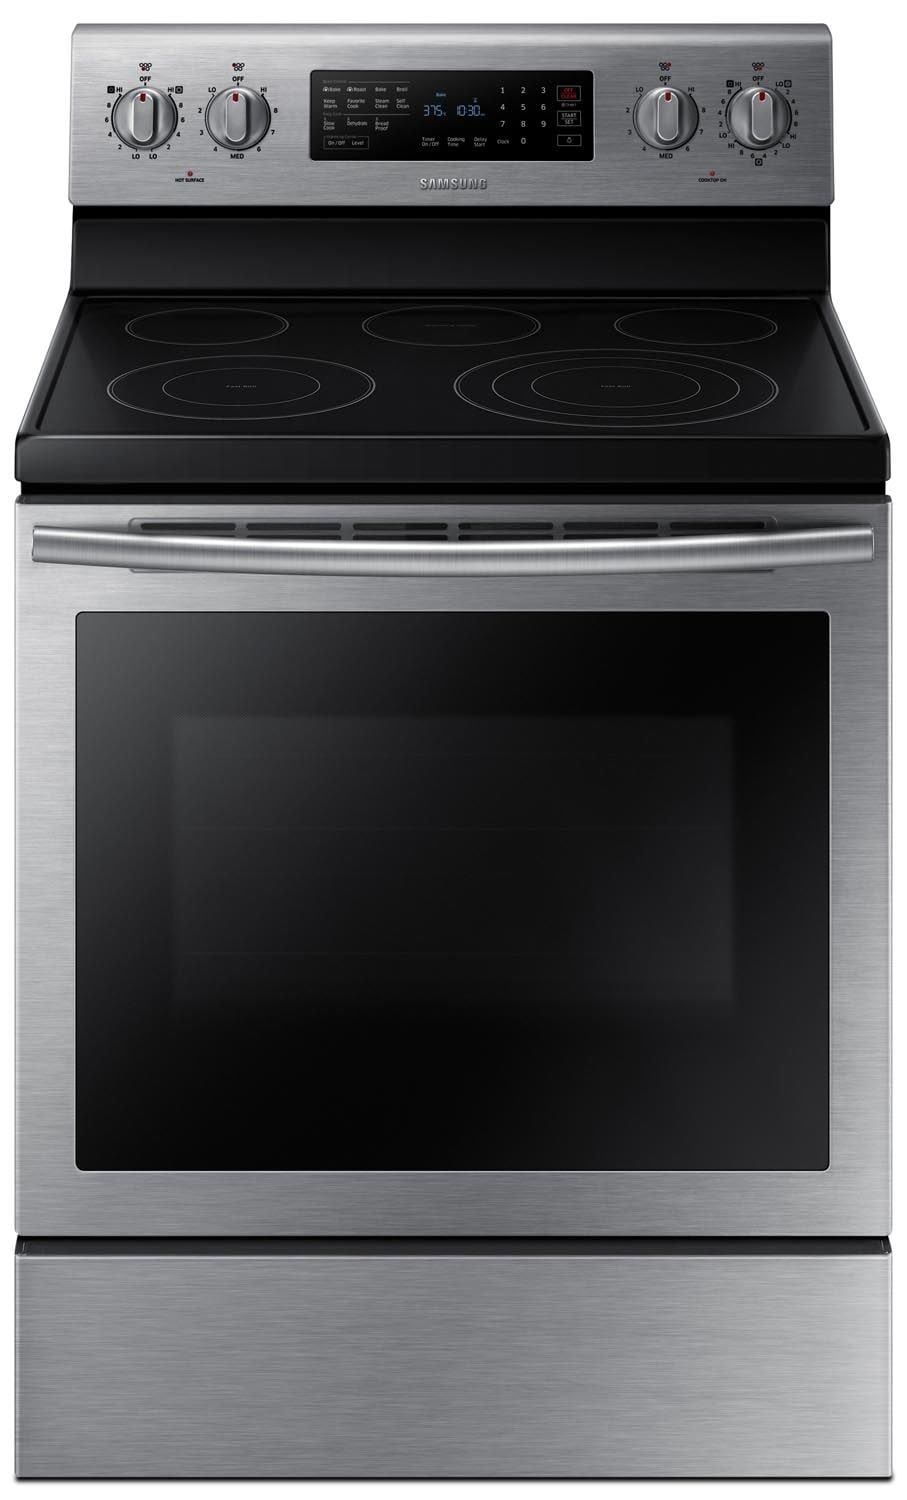 Cooking Products - Samsung Stainless Steel Electric Convection Range (5.9 Cu. Ft.) - NE59J7630SS/AC